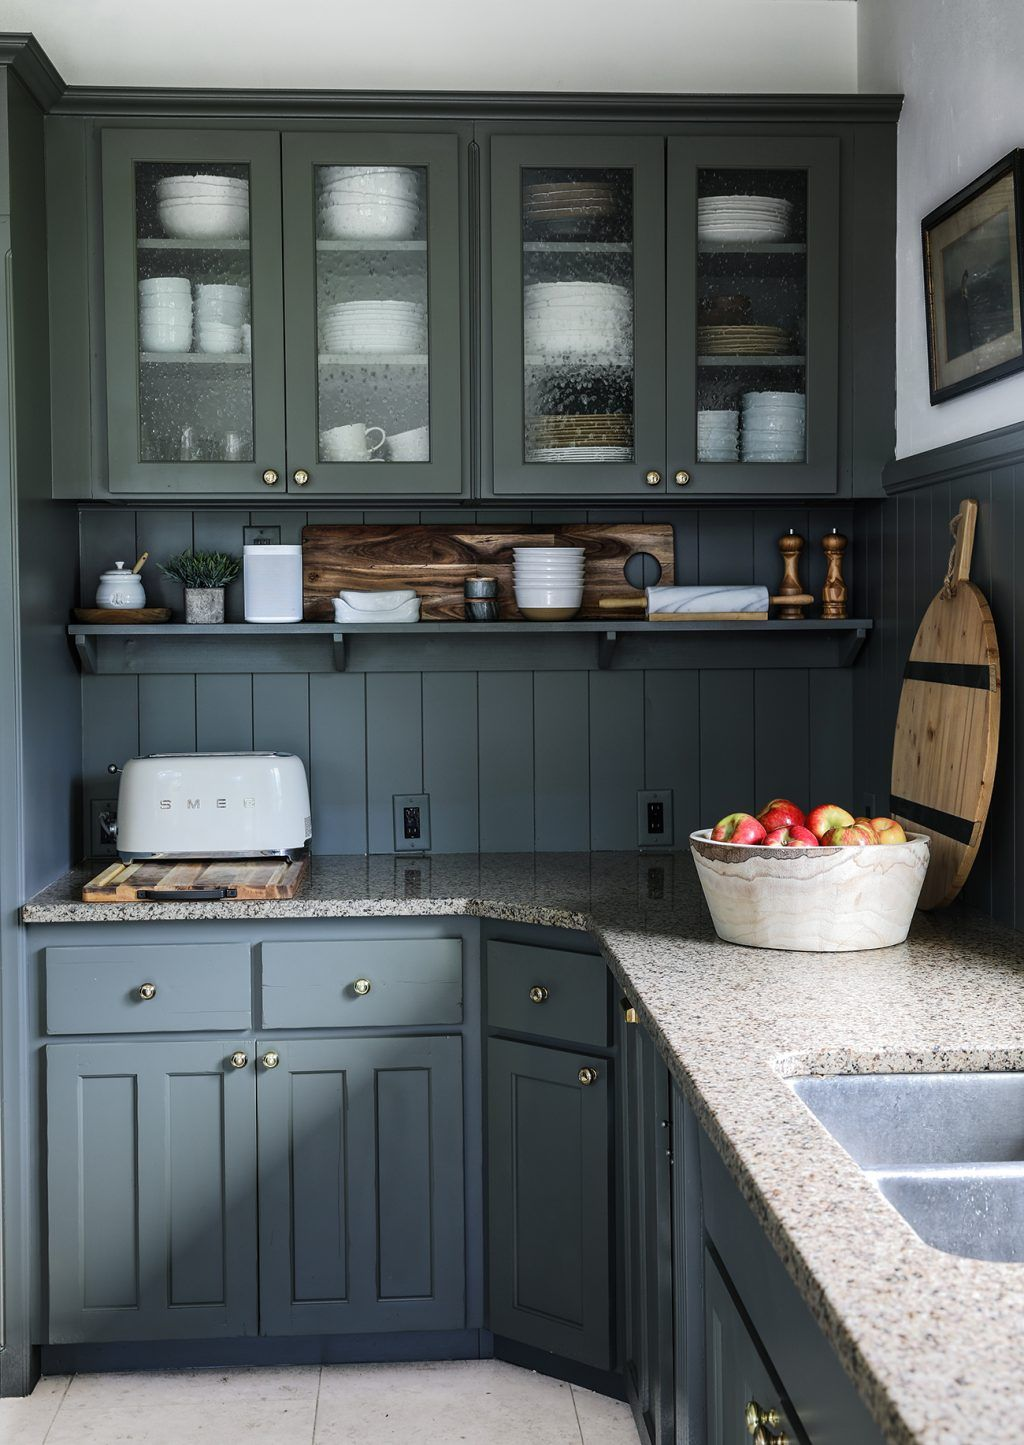 Our Modern Cottage Kitchen Makeover On The Cheap Kitchen Remodel Small Cottage Kitchen Kitchen Makeover